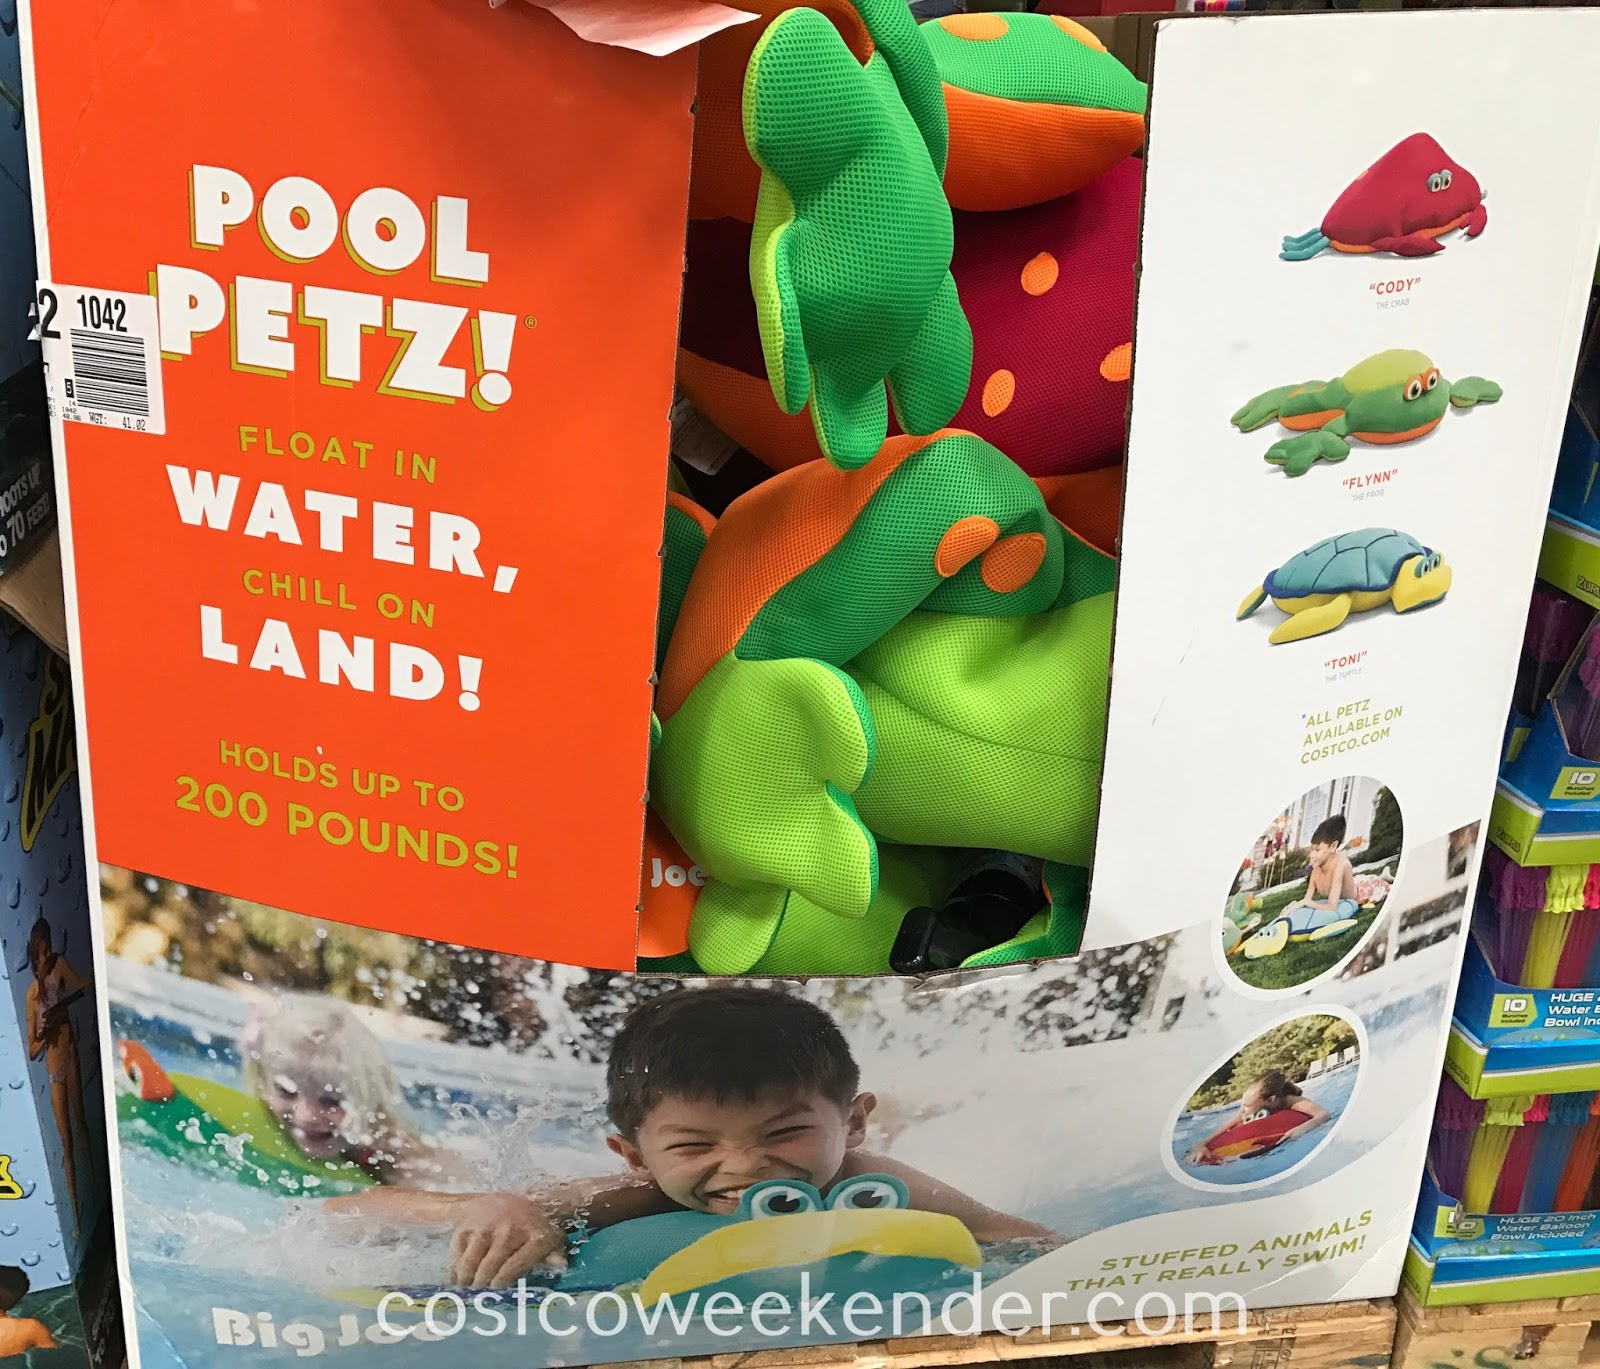 Have fun in the water with the Pool Petz Floating Pool Toy